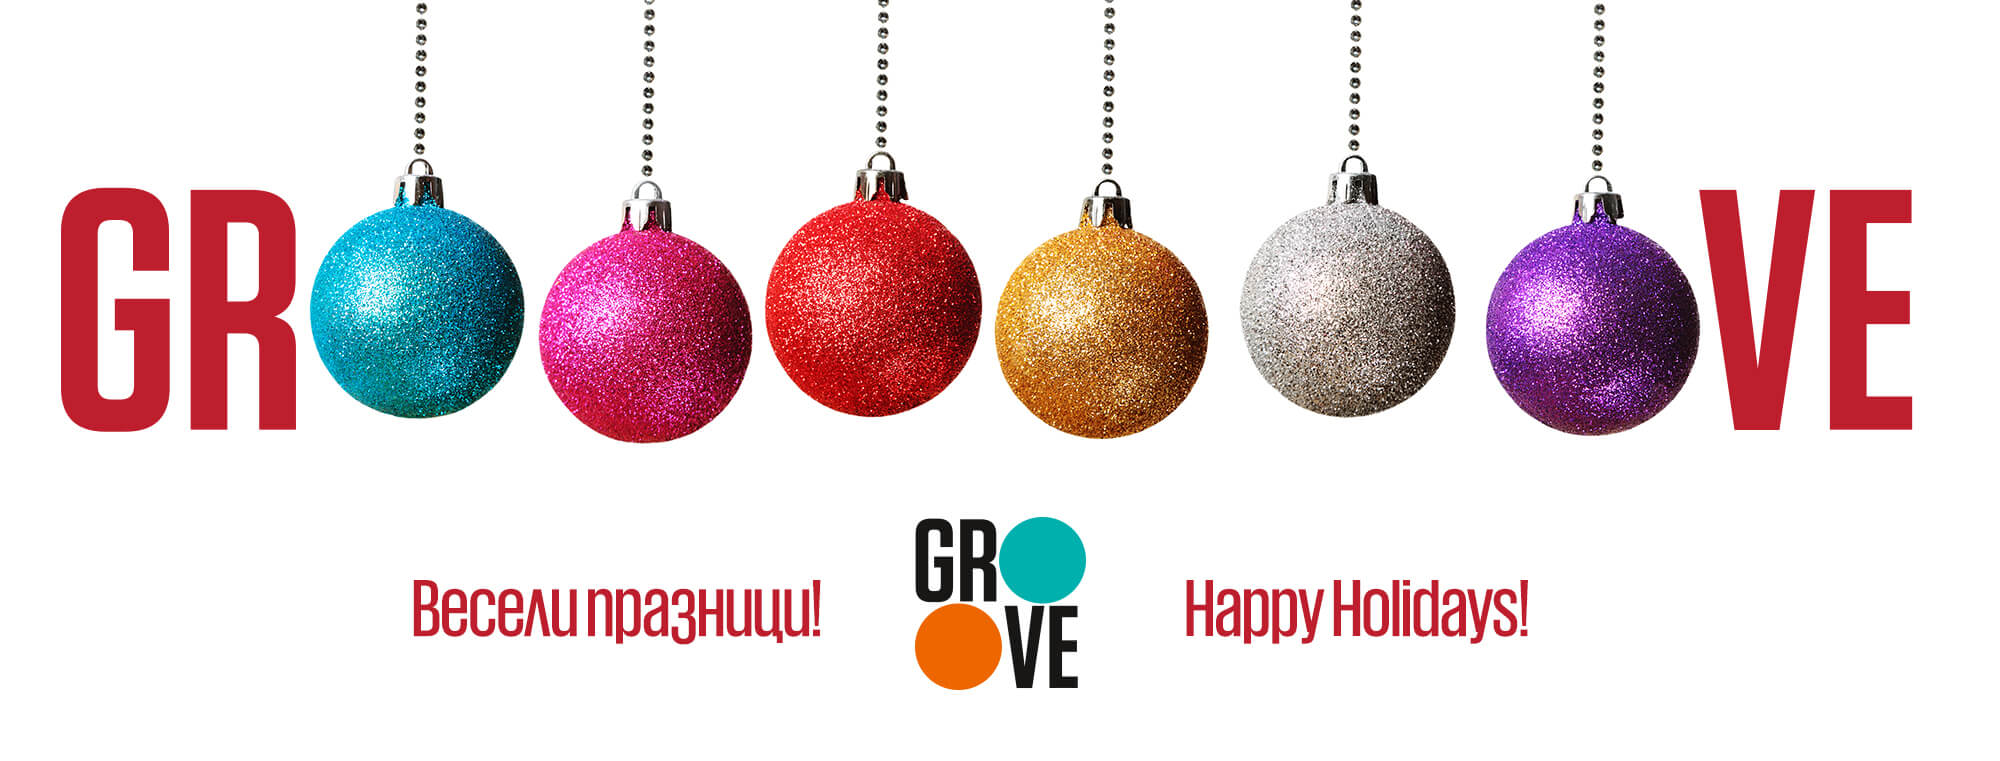 Groove-Happy-Holidays-FB-